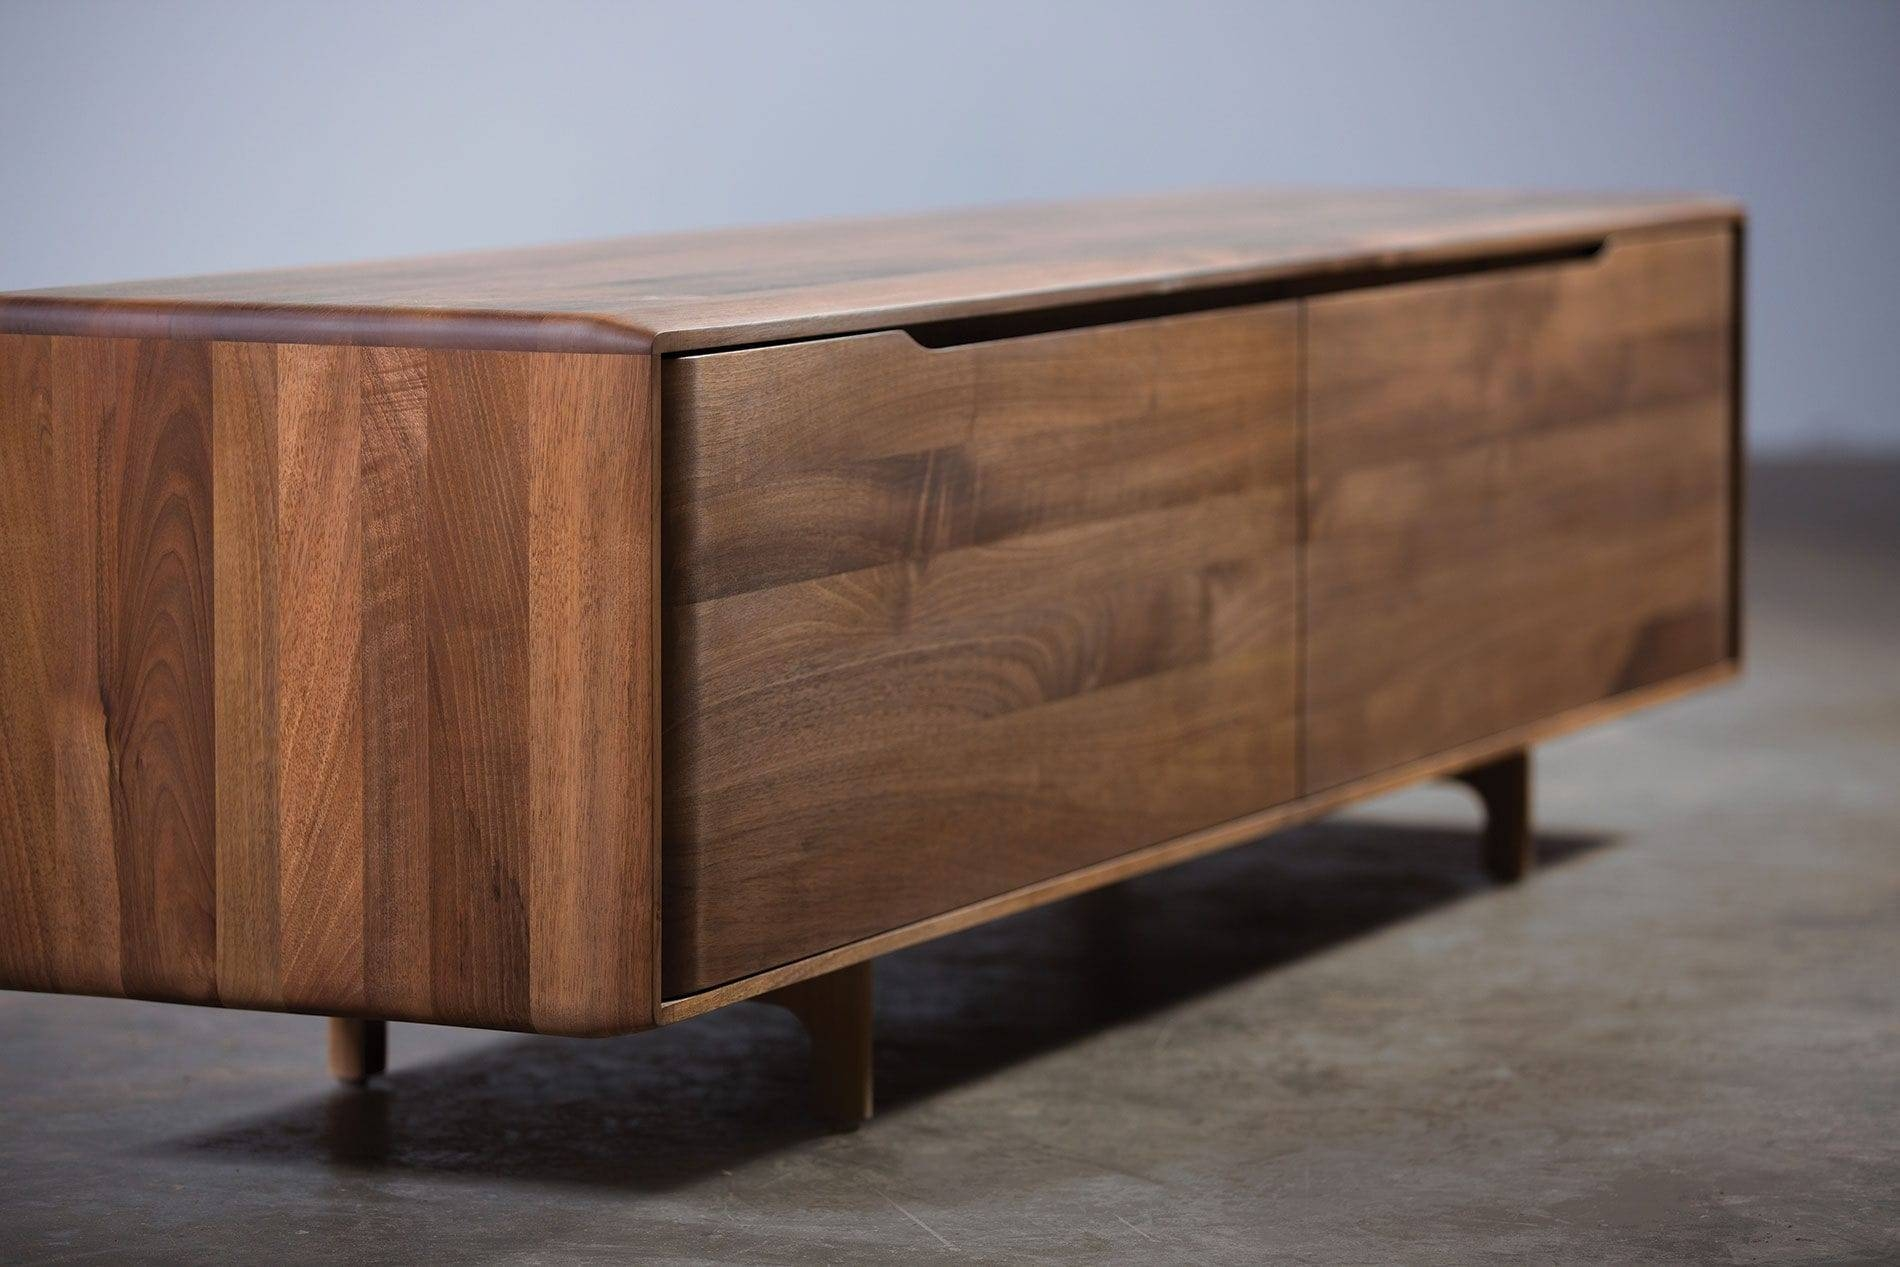 Contemporary Sideboard / Oak / Walnut / Solid Wood – Invito With Regard To Modern Sideboard Furniture (View 8 of 30)